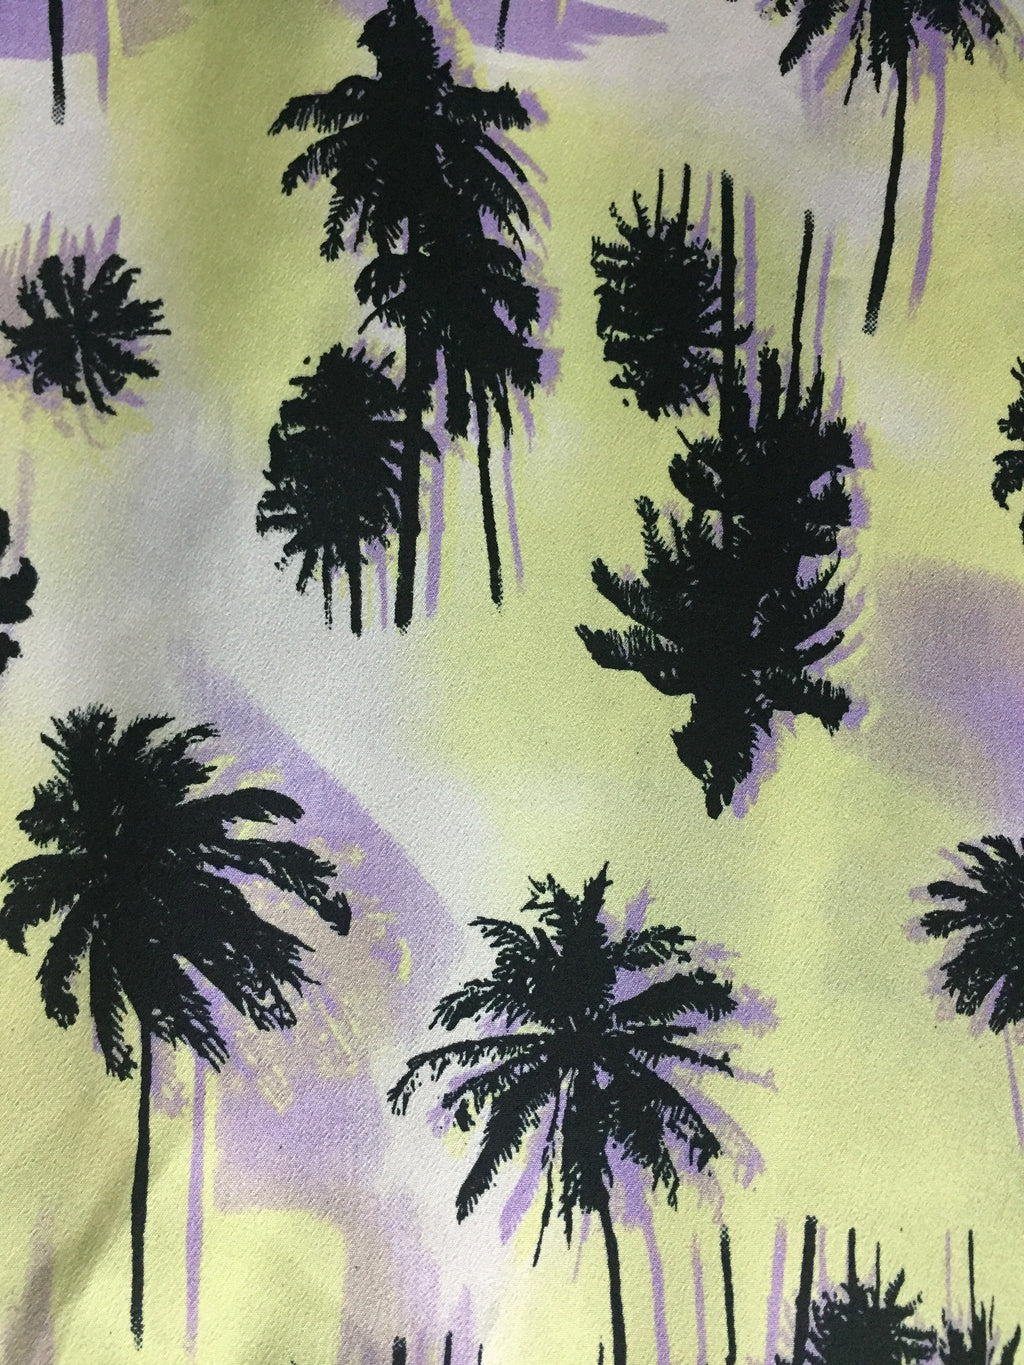 The palm Trees - Yellow & Black Top - #FTFY - For The Fun Years